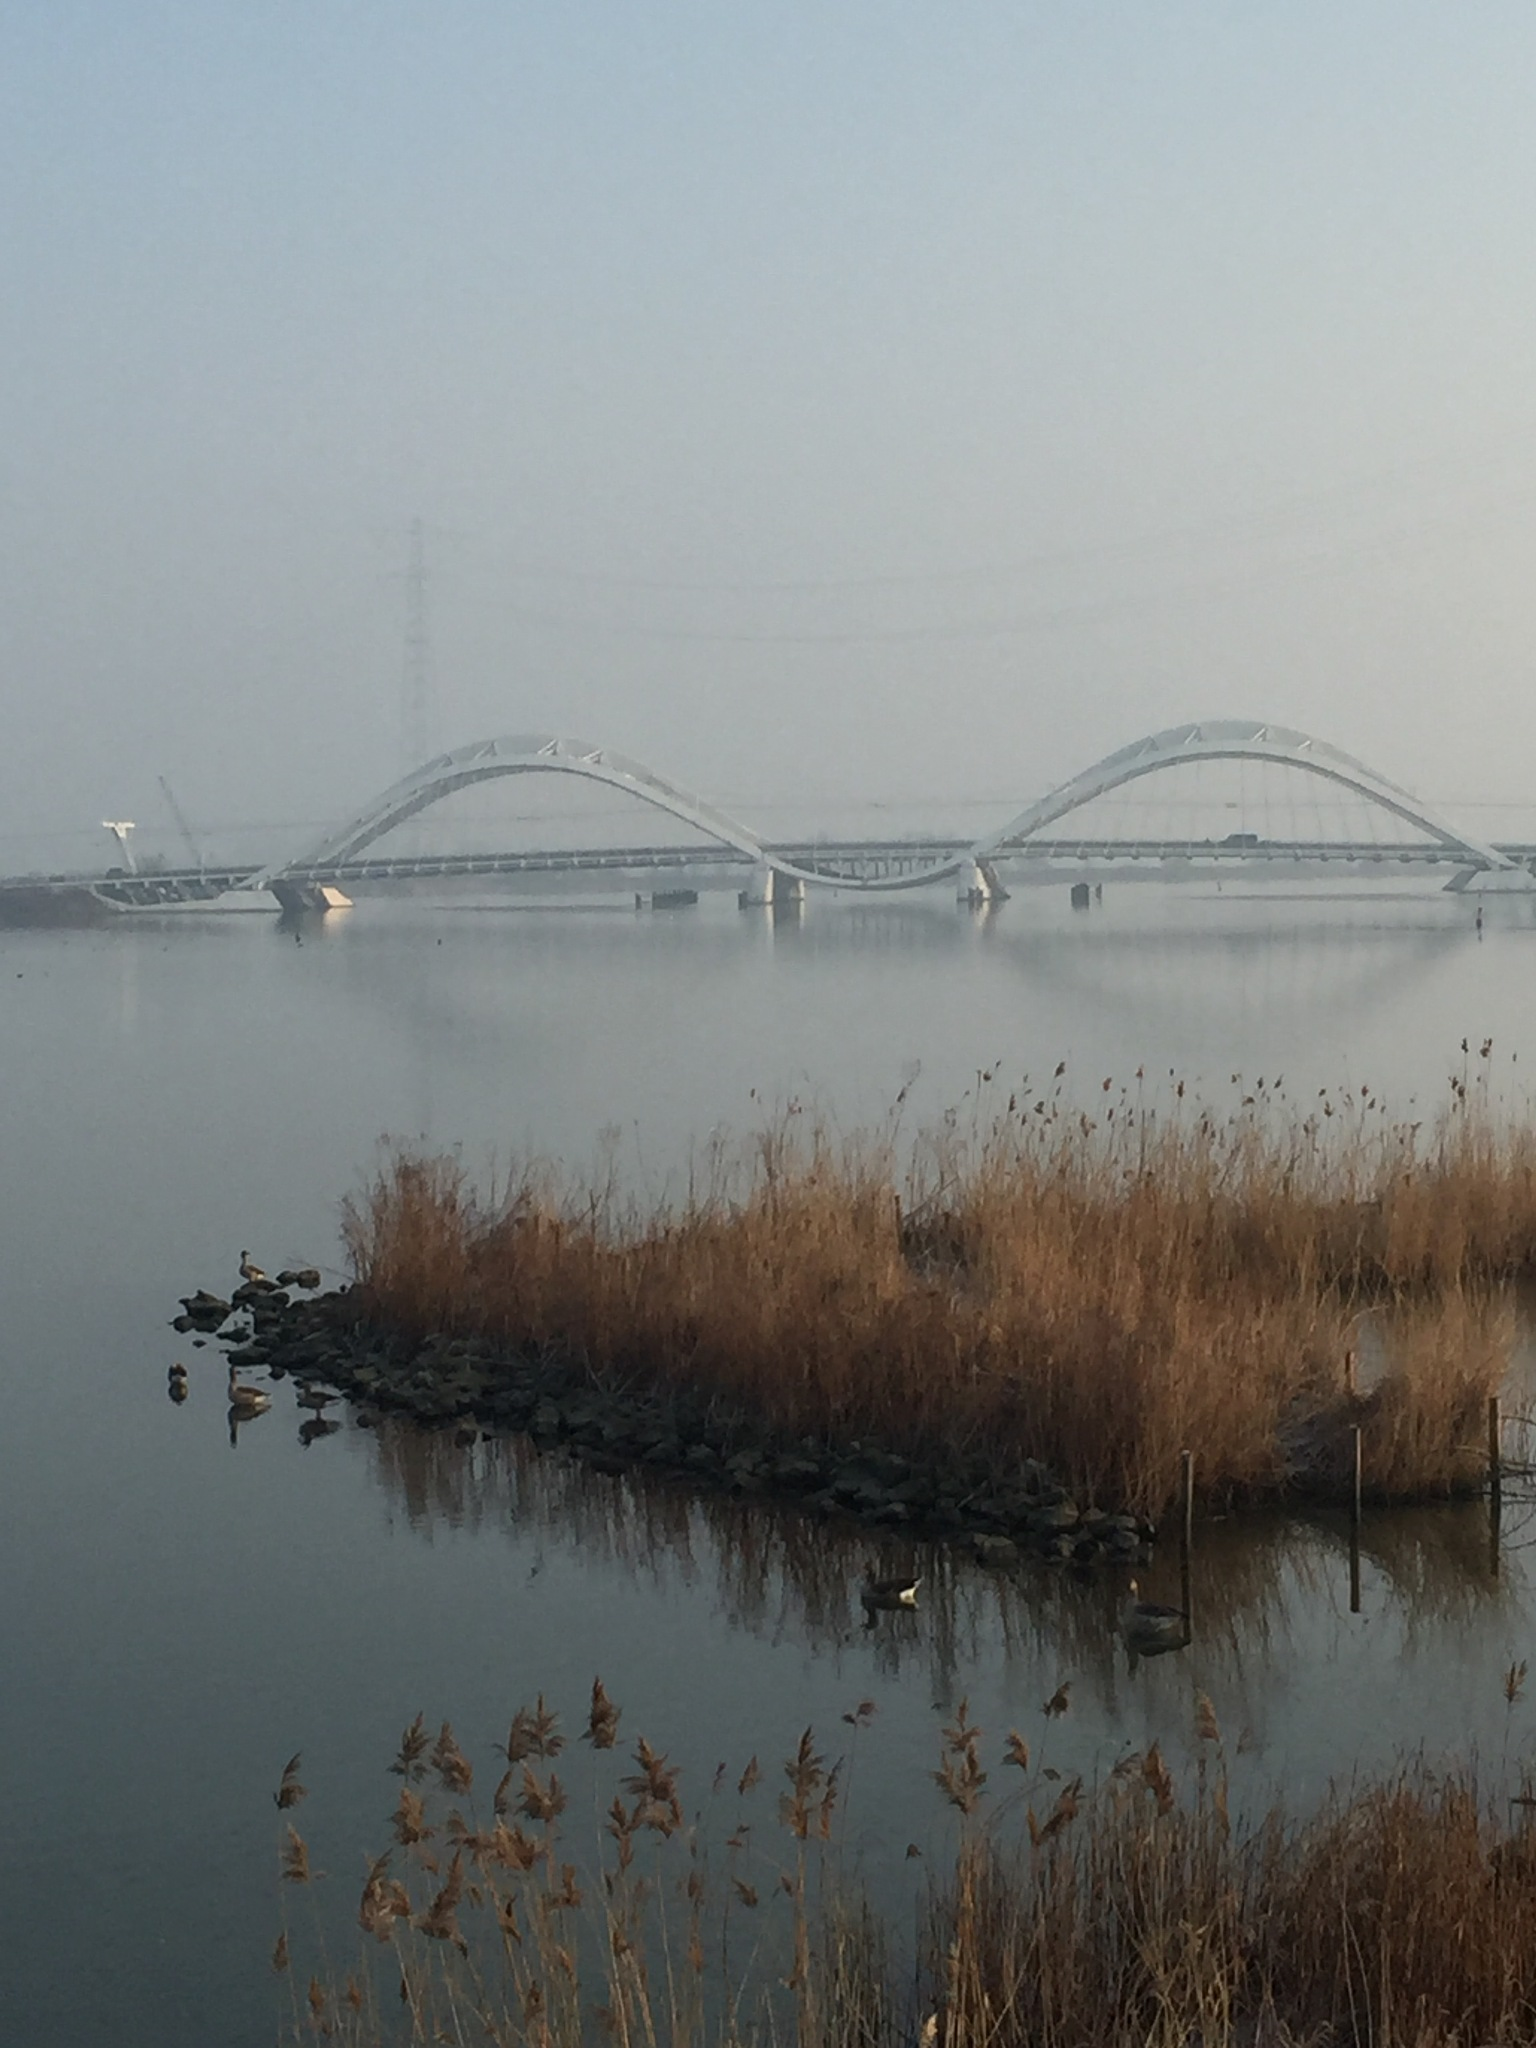 Bridge from afar by Peter P C